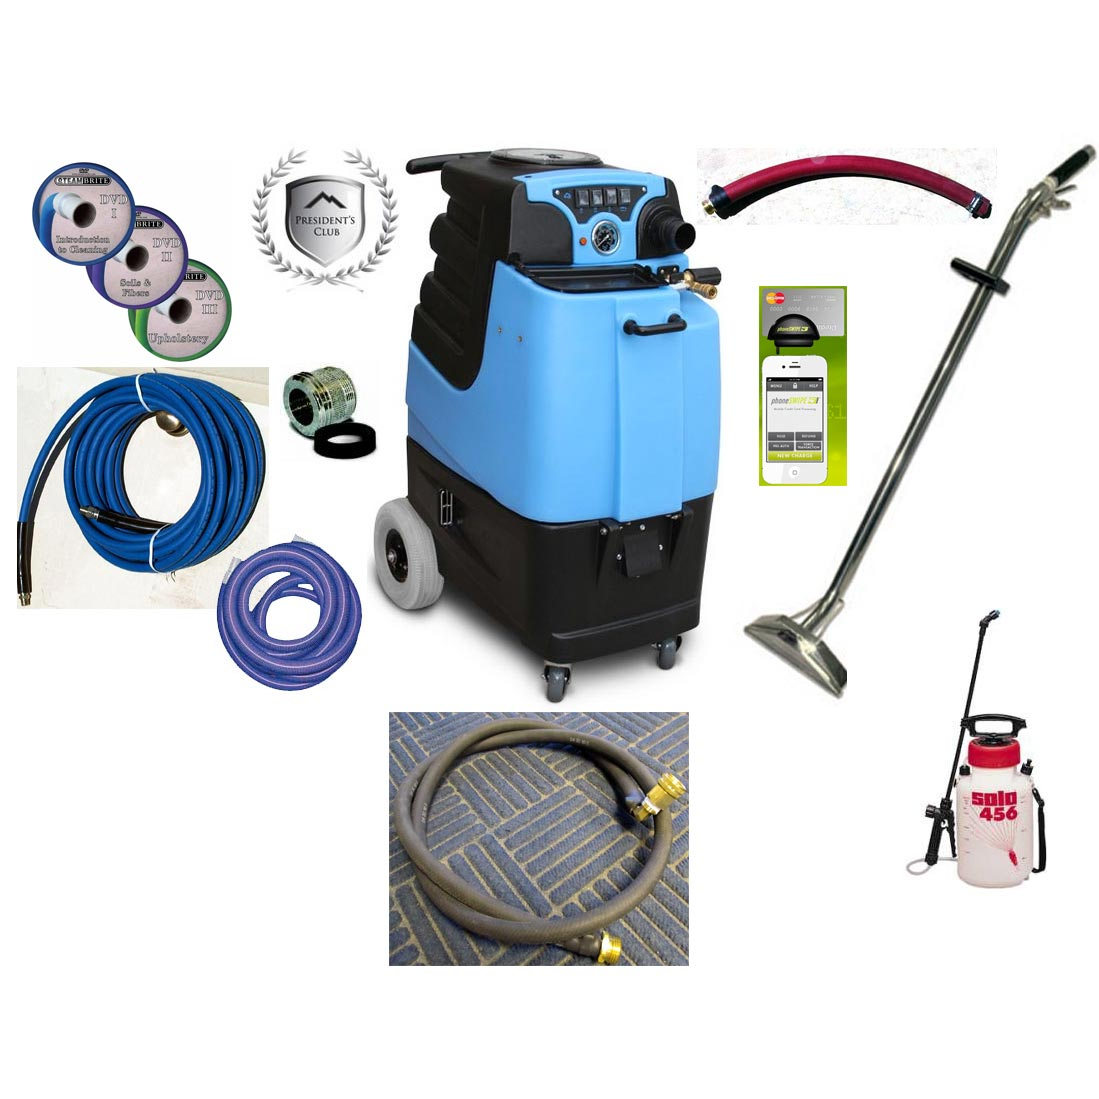 Mytee LTD5 15gal 500psi Dual 3 Stage Vacs Auto Fill Auto Dump Carpet Upholstery Extractor Basic Starter Package